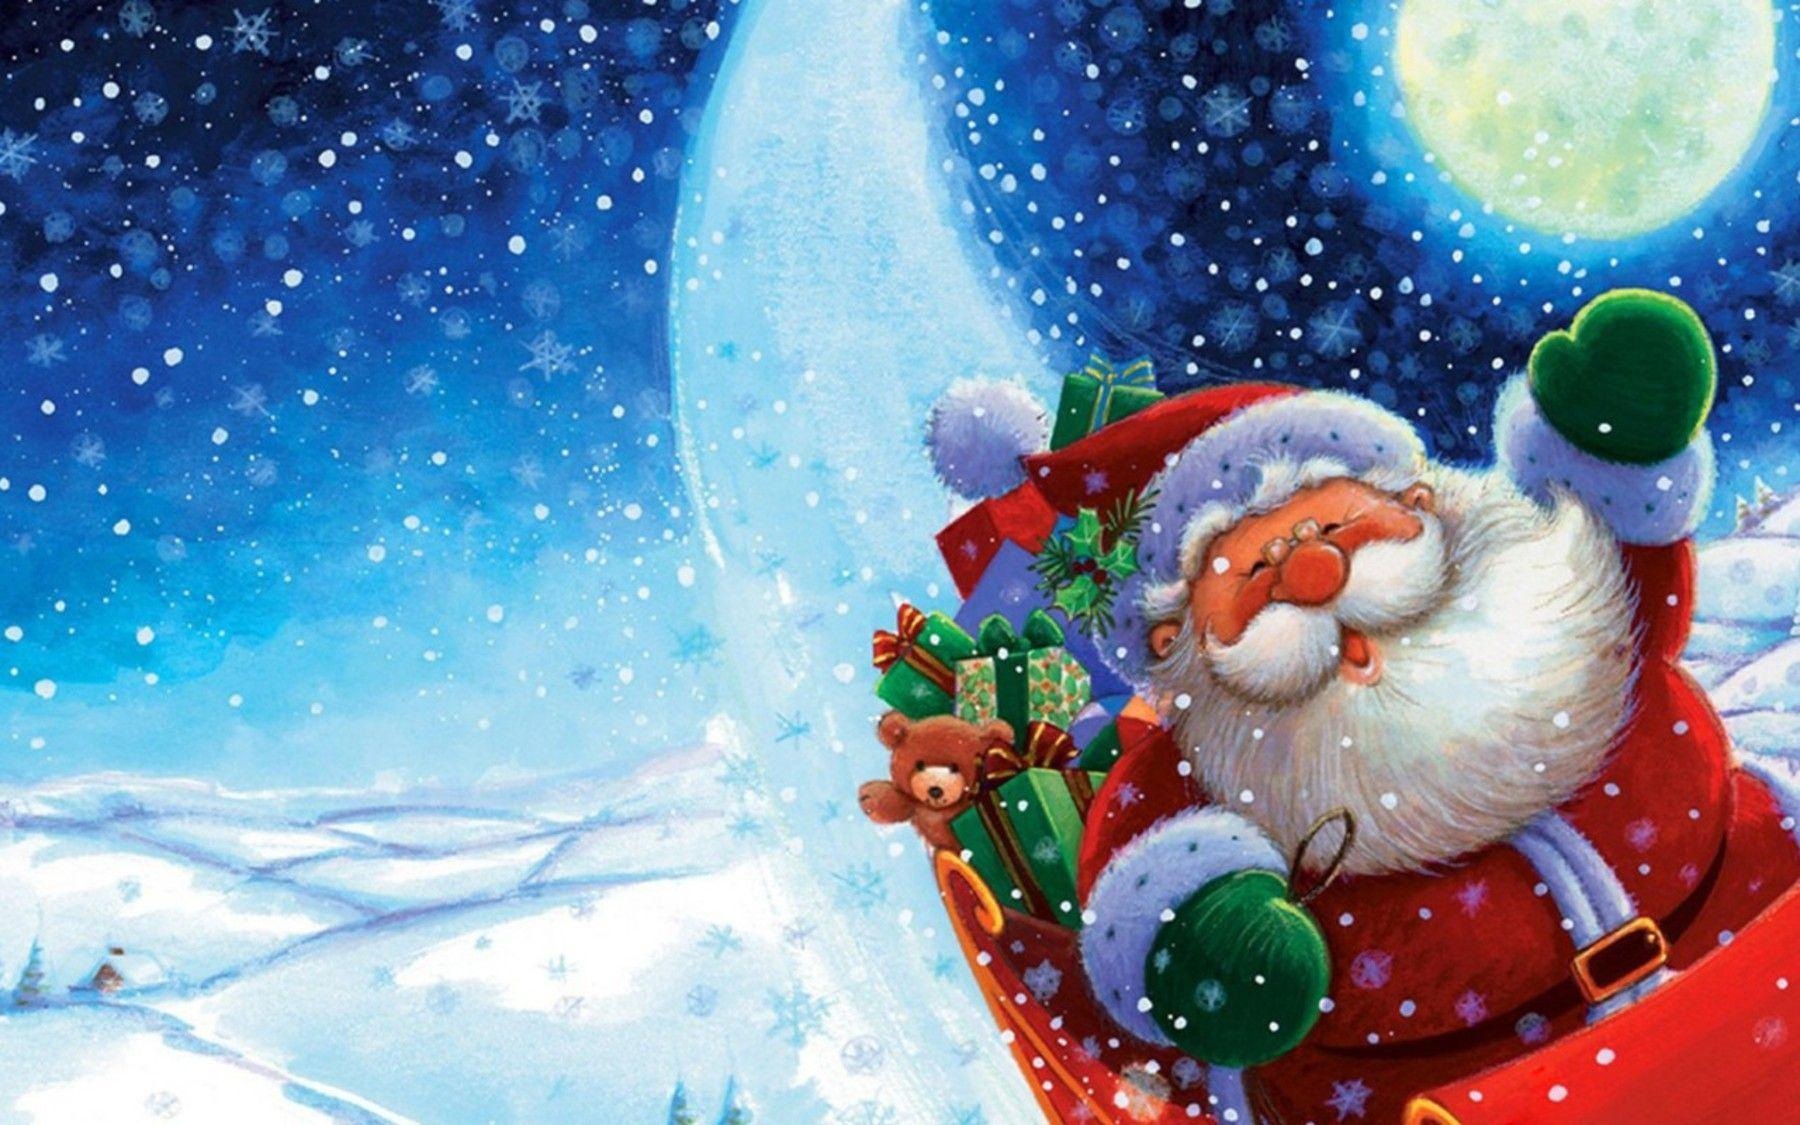 Wallpapers For Santa Claus Wallpaper